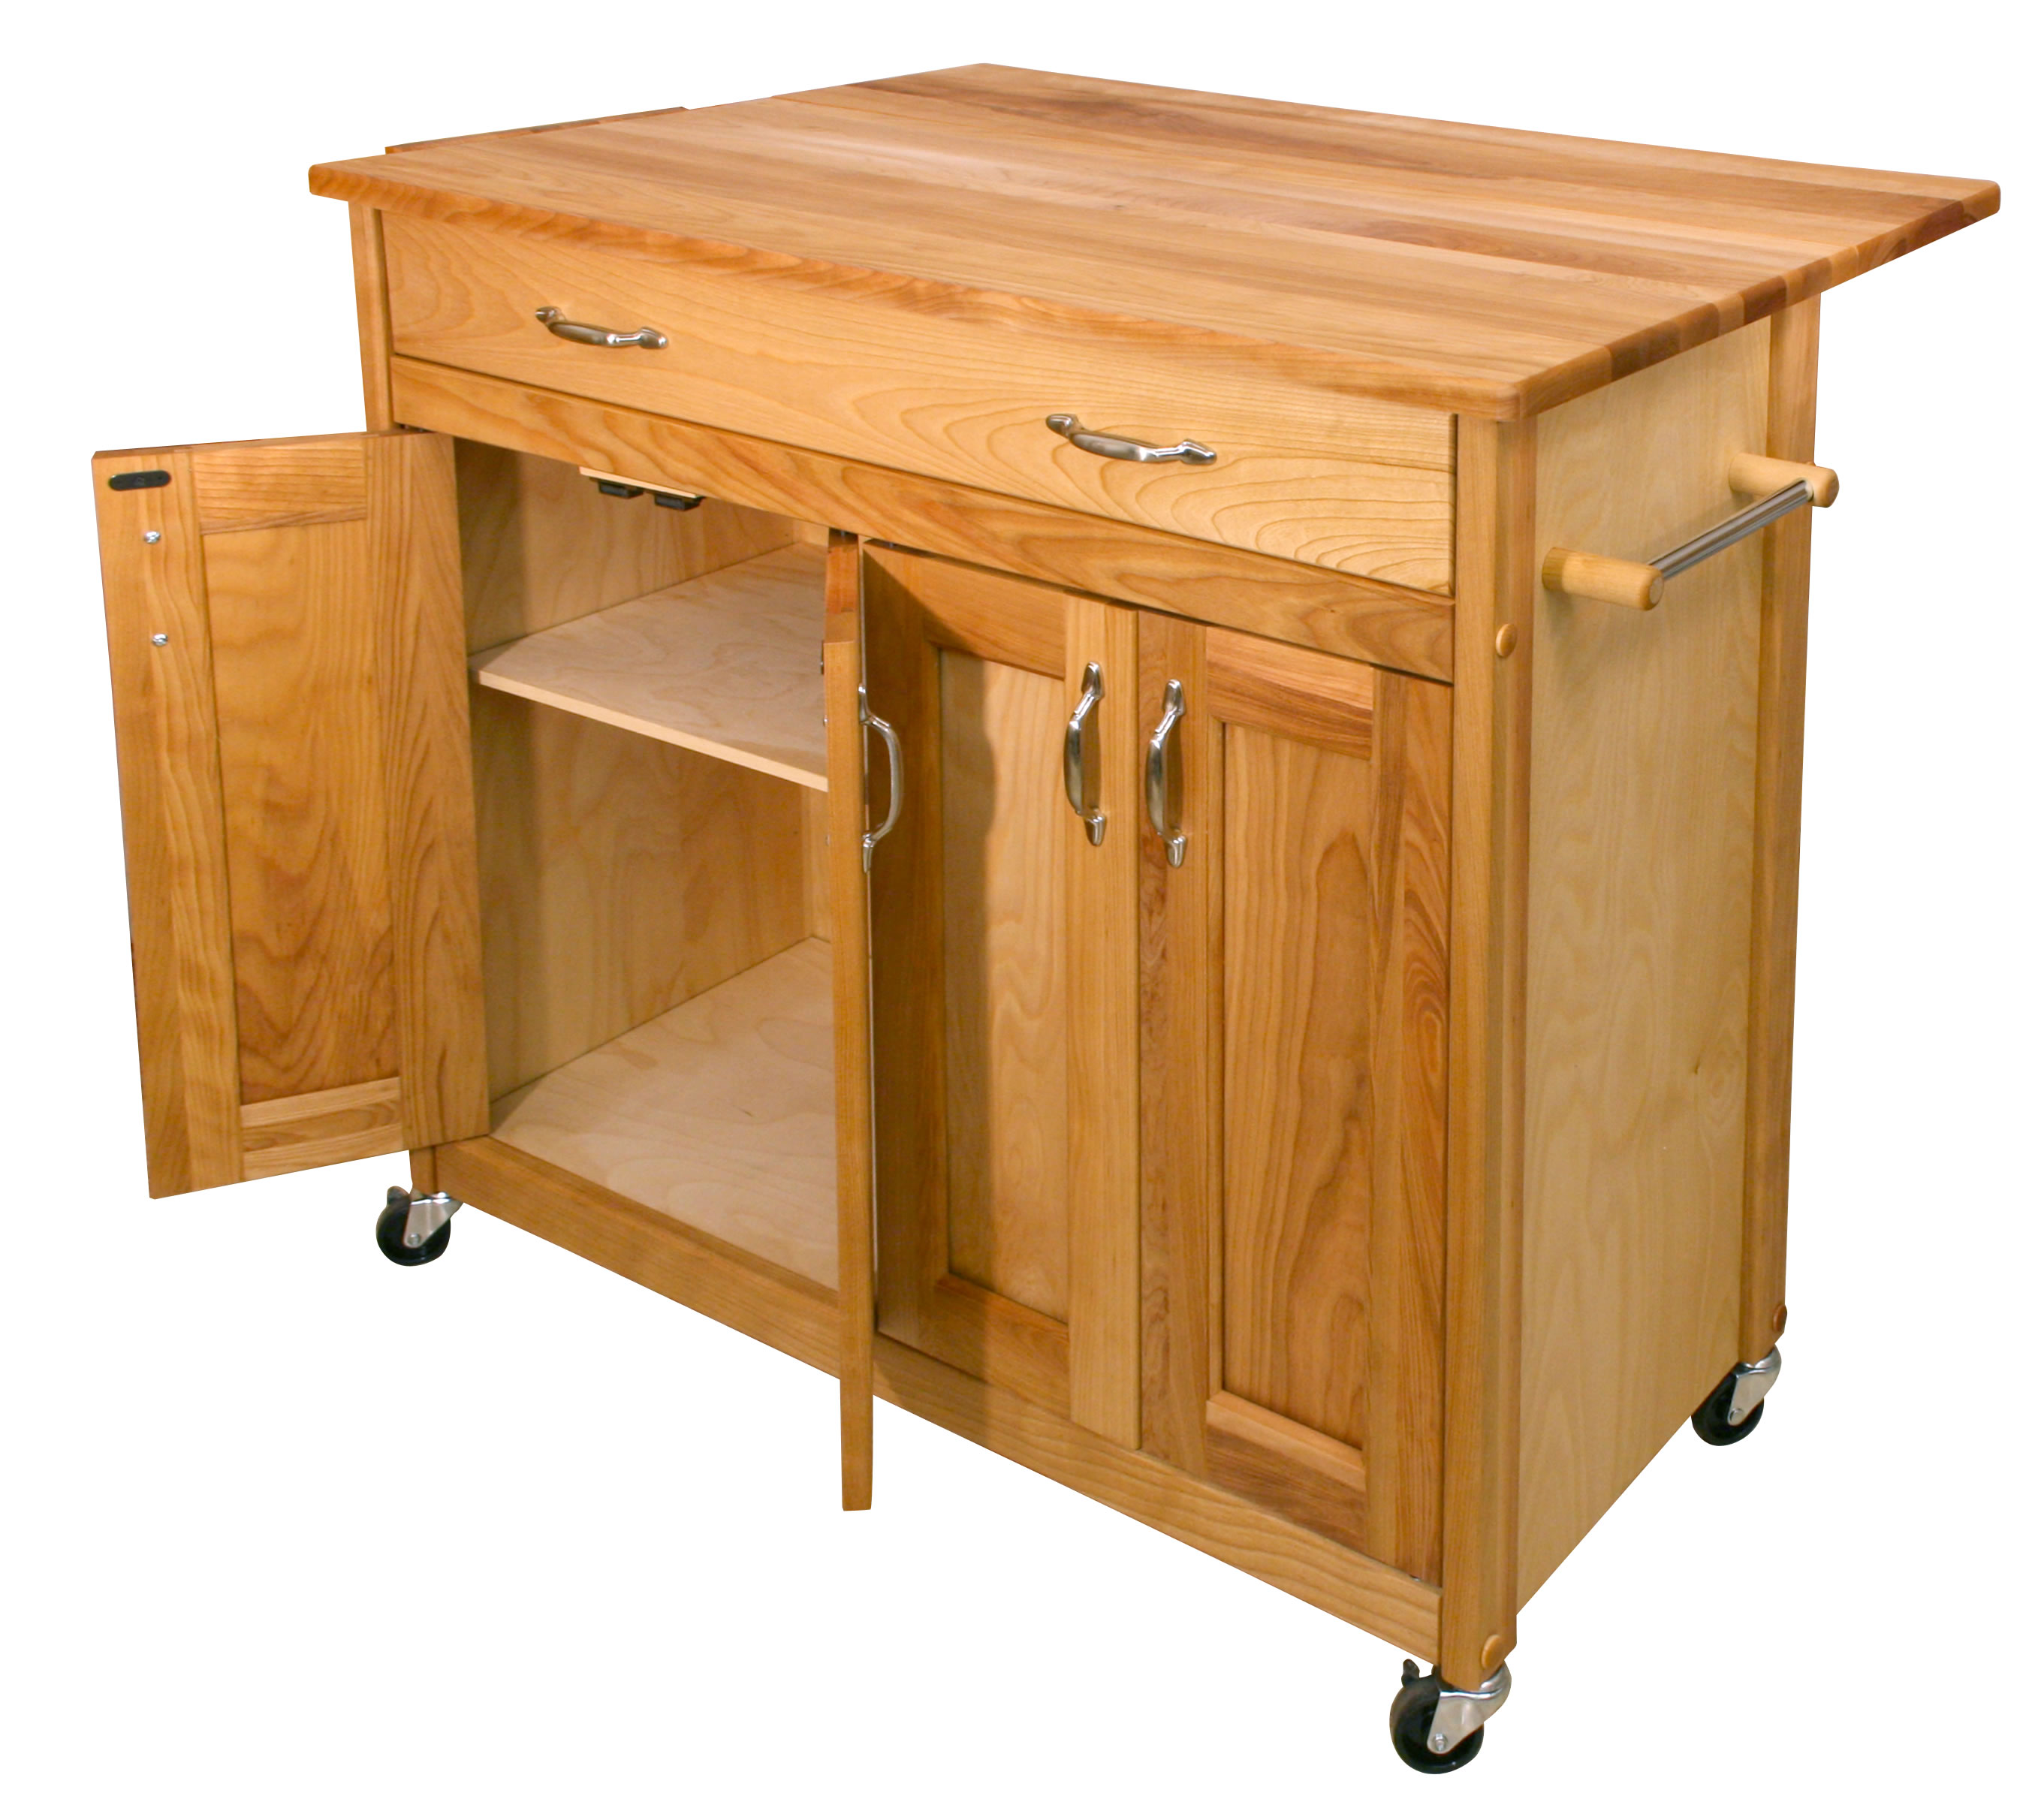 catskill mid sized kitchen island cart w drop leaf. Black Bedroom Furniture Sets. Home Design Ideas